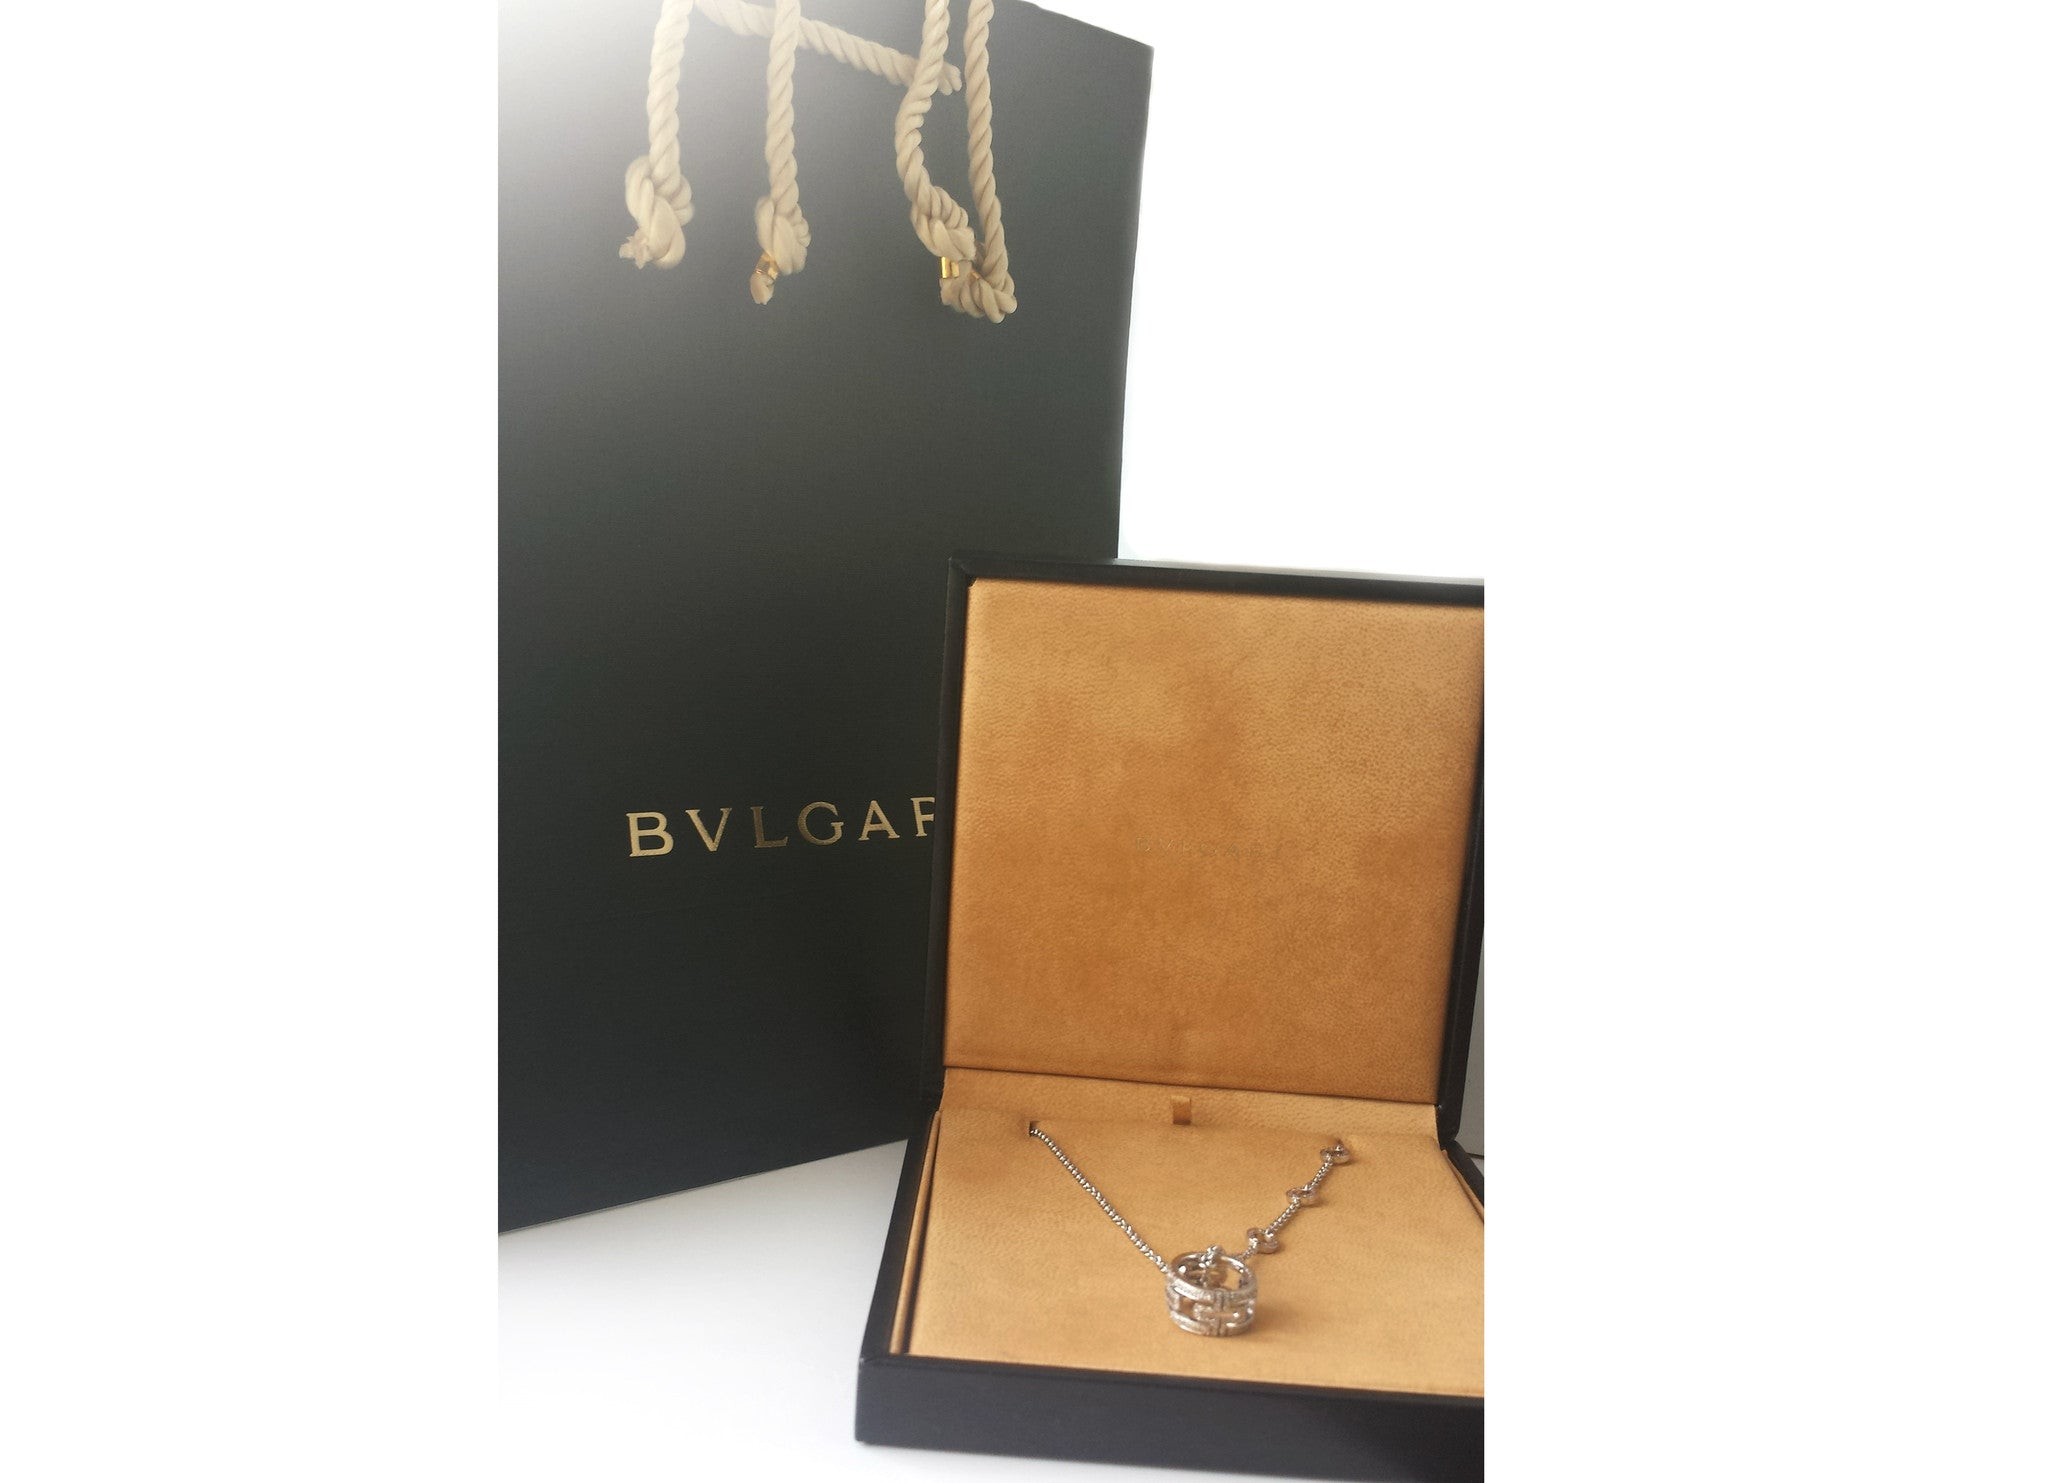 Bulgari Bvlgari Parentesi Diamond Necklace 18k White Gold with Box & Bag